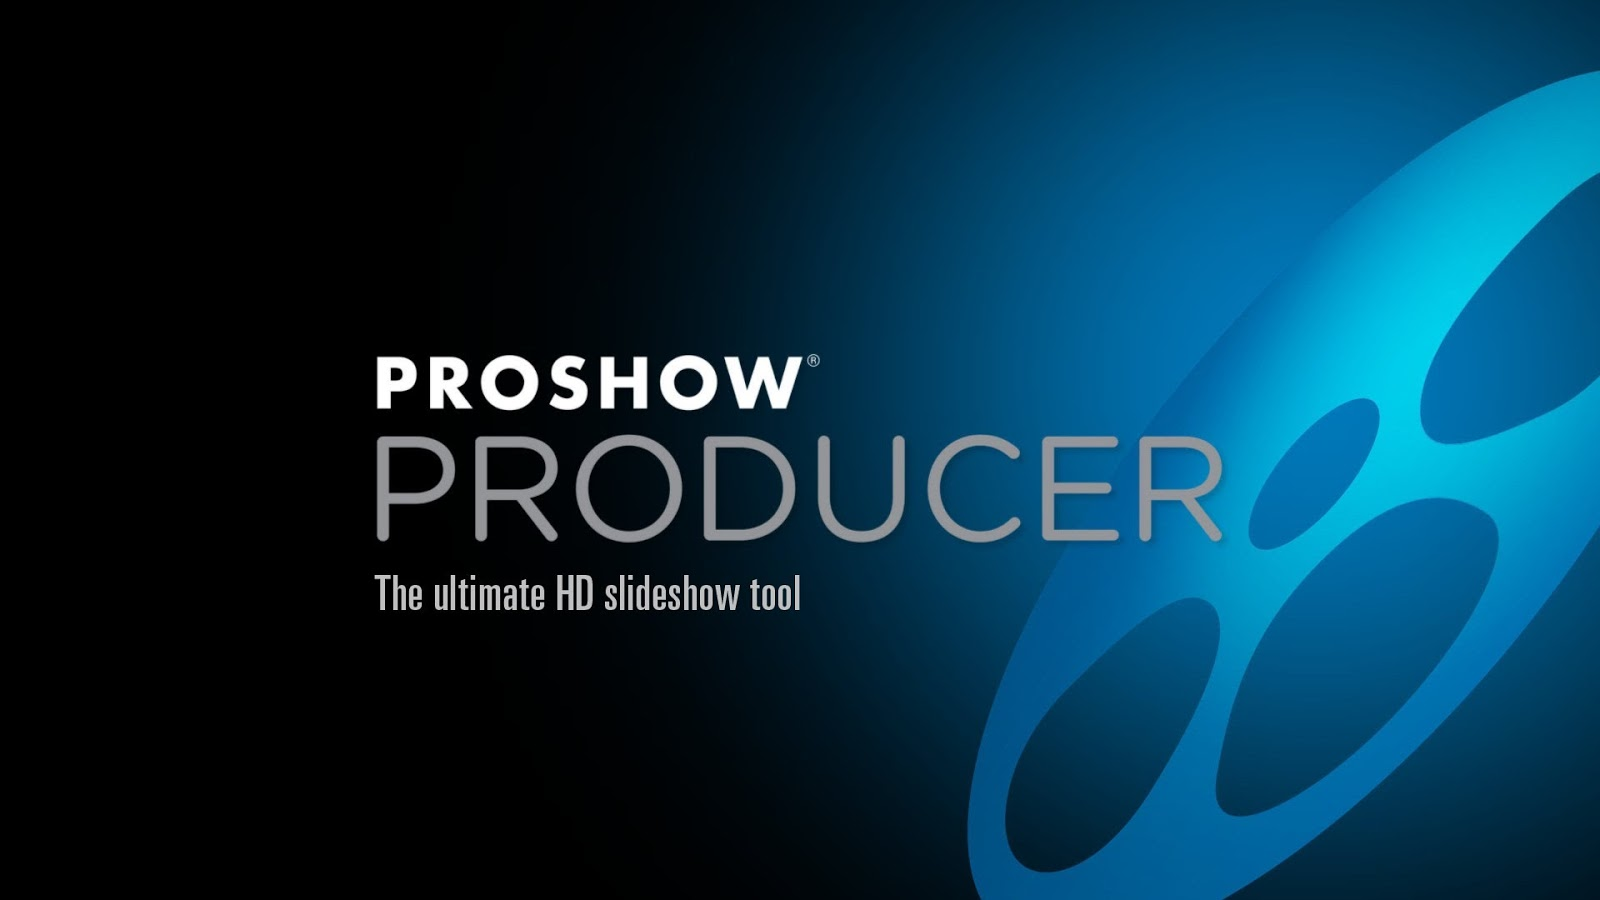 proshow producer templates download